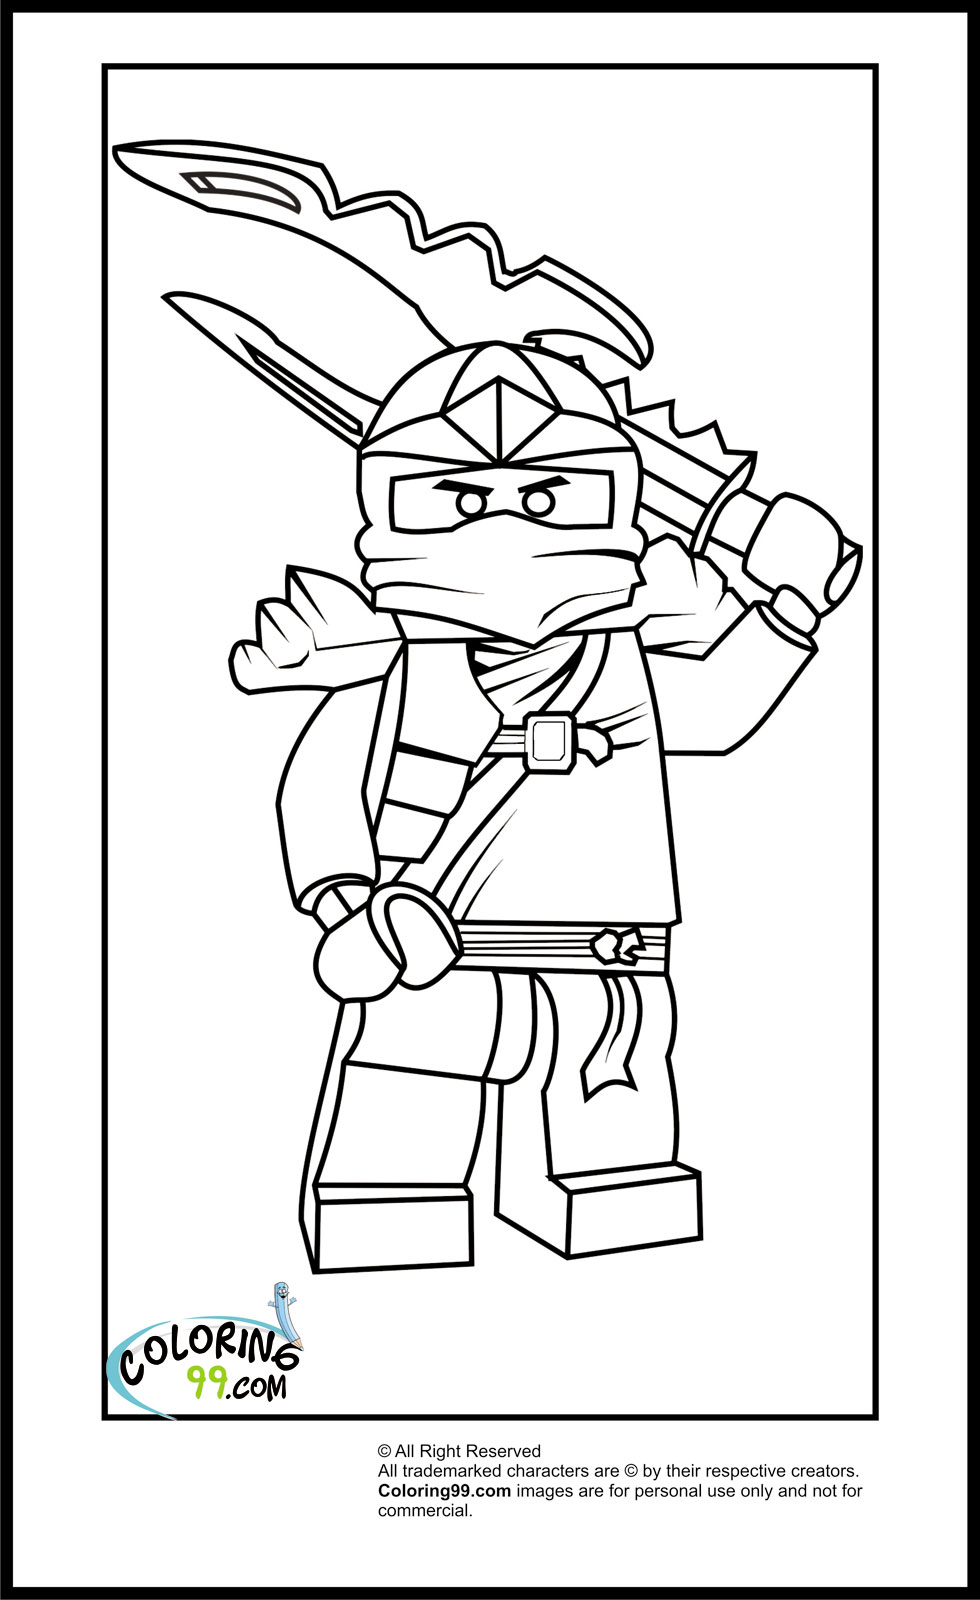 LEGO Ninjago Coloring Pages Minister